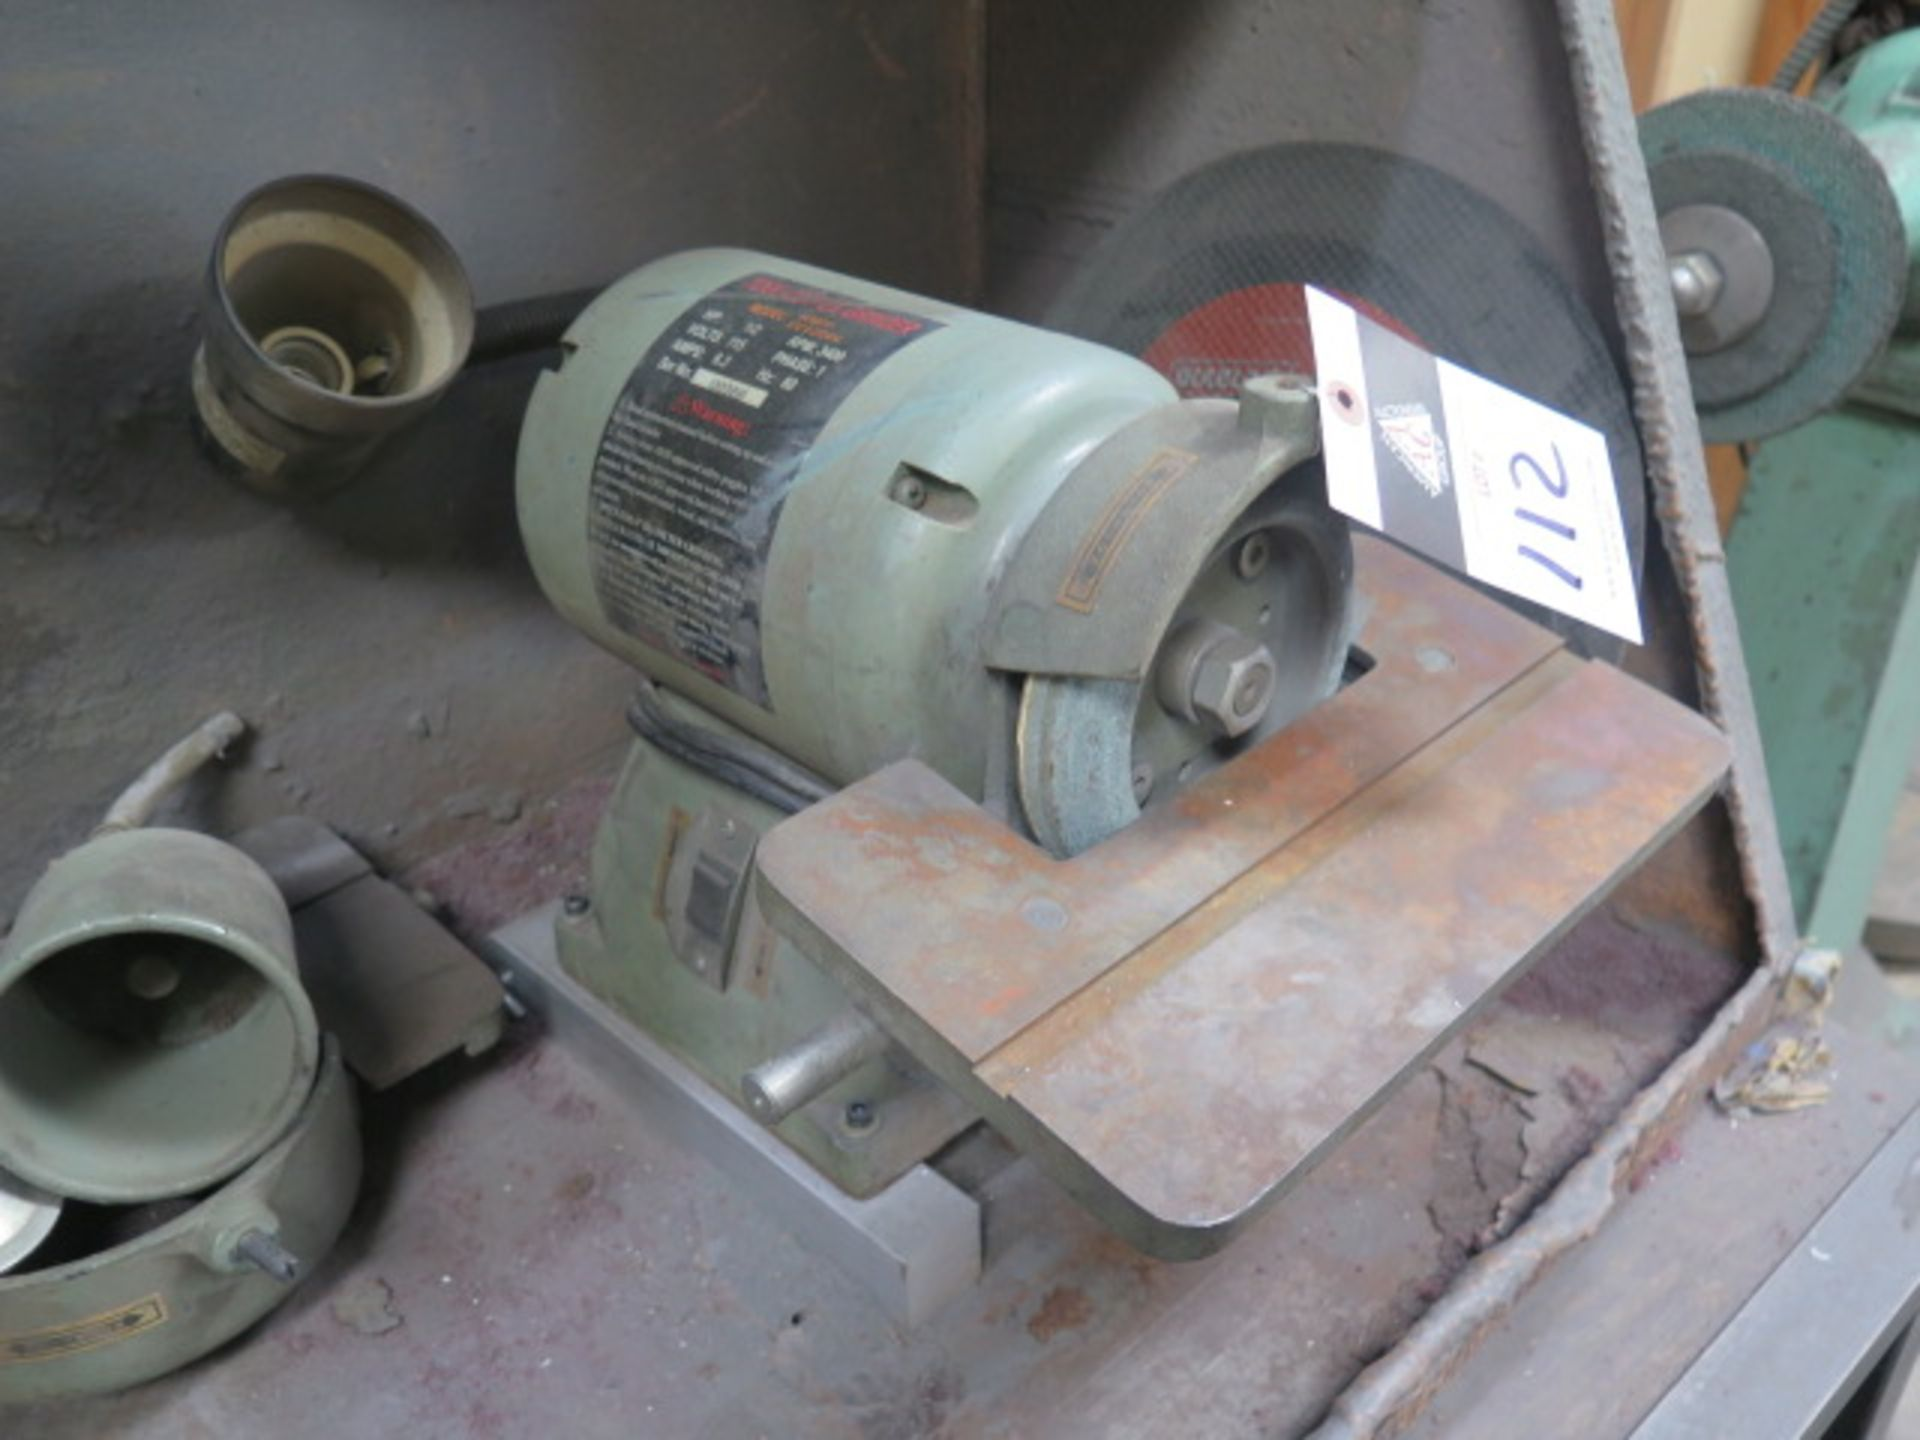 Import Carbide Tool Grinder (NEEDS REPAIR) (SOLD AS-IS - NO WARRANTY)